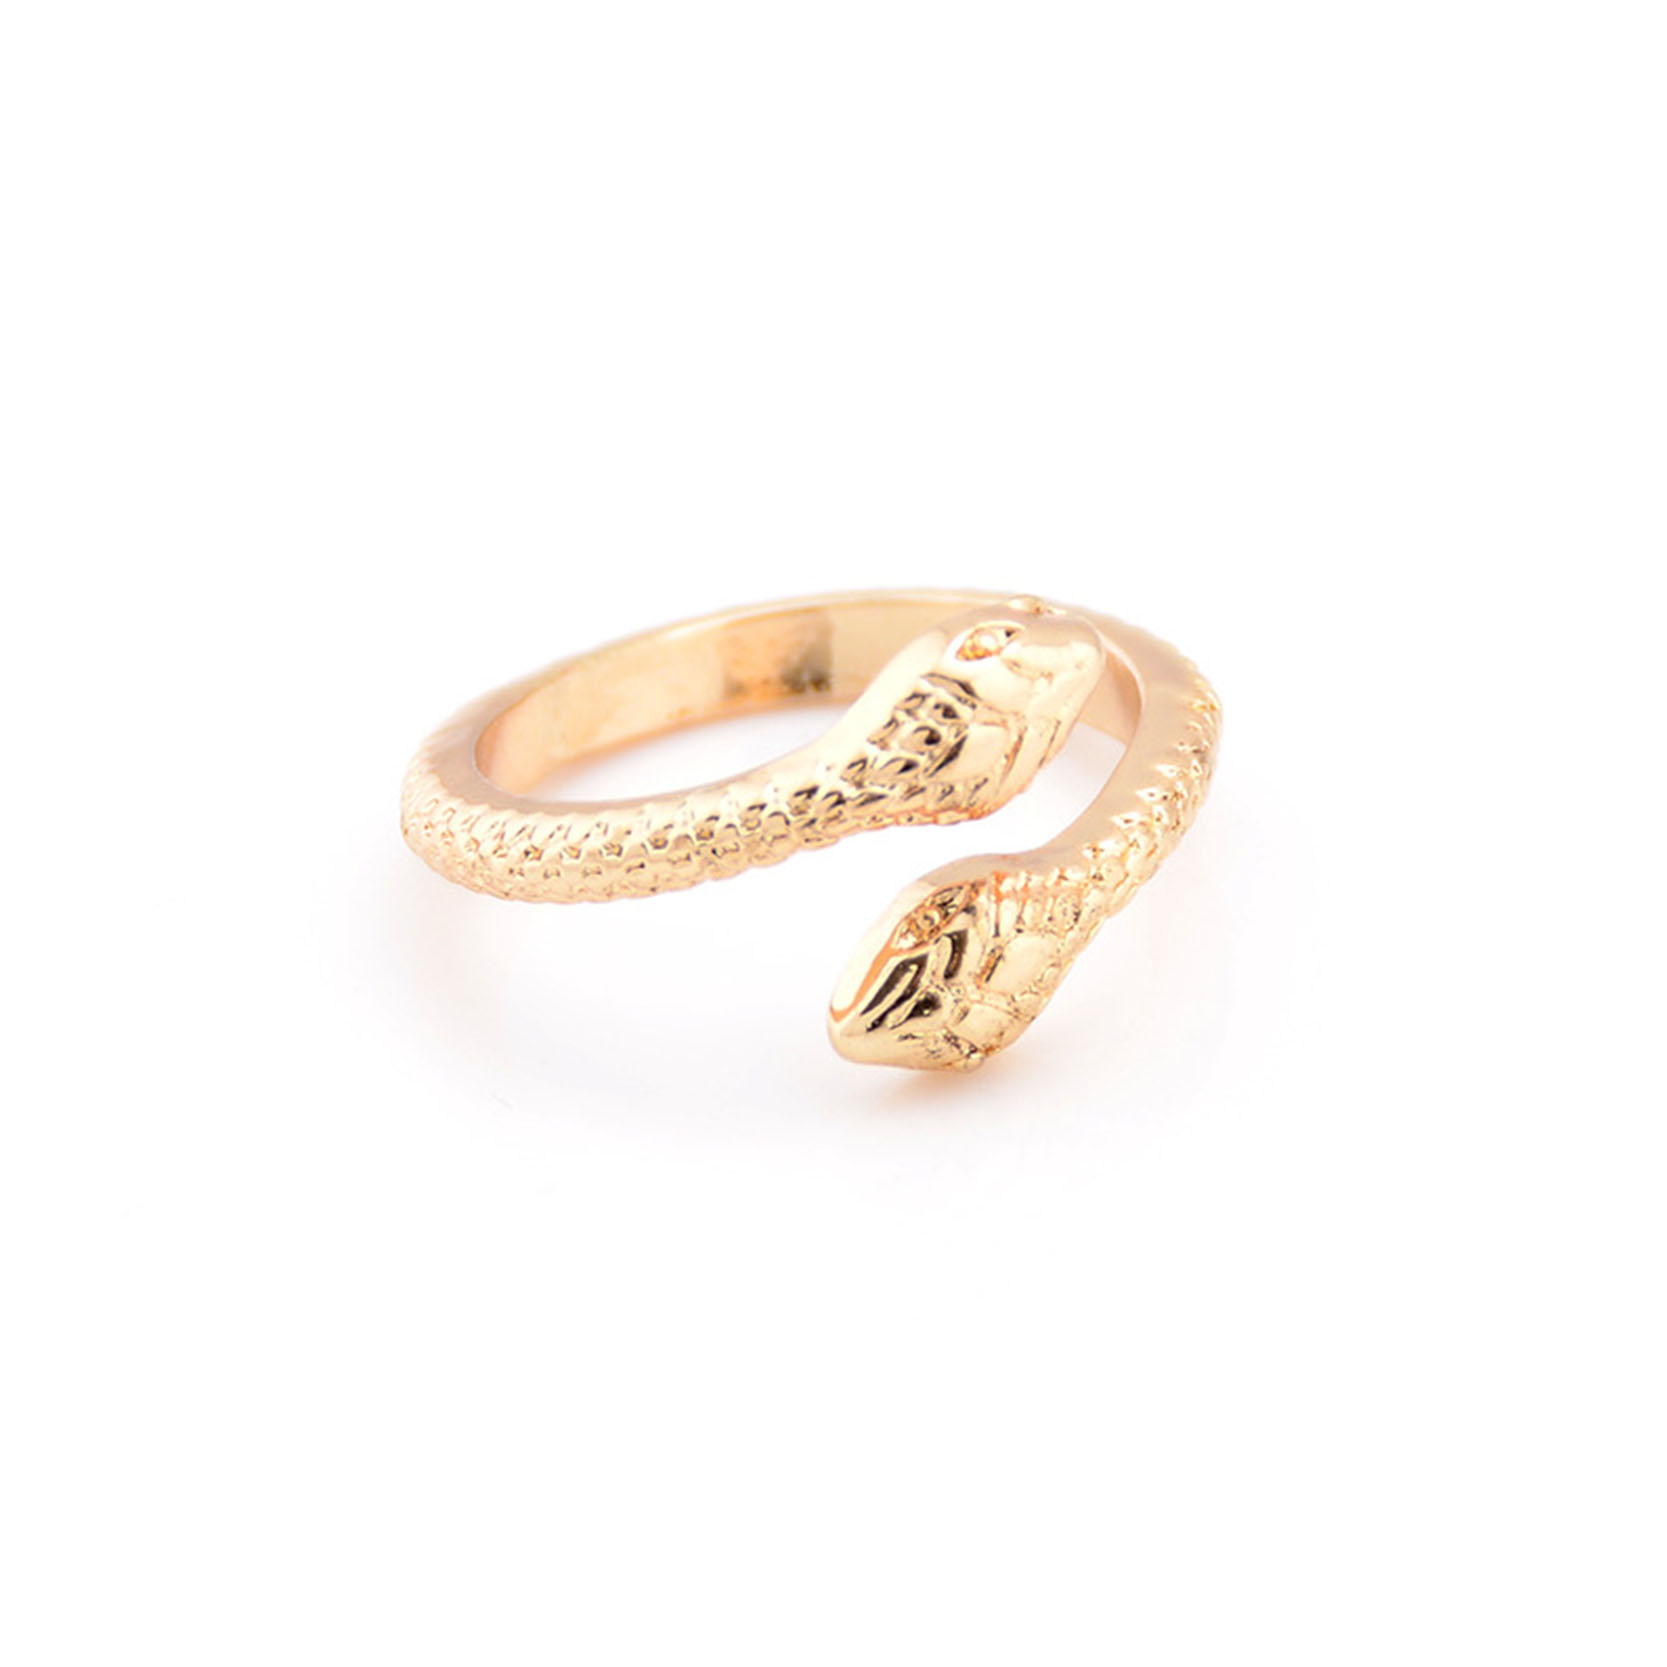 Cheap Fashion Jewelry Gold / Silver Color with Snake Shaped Ring for Women Party